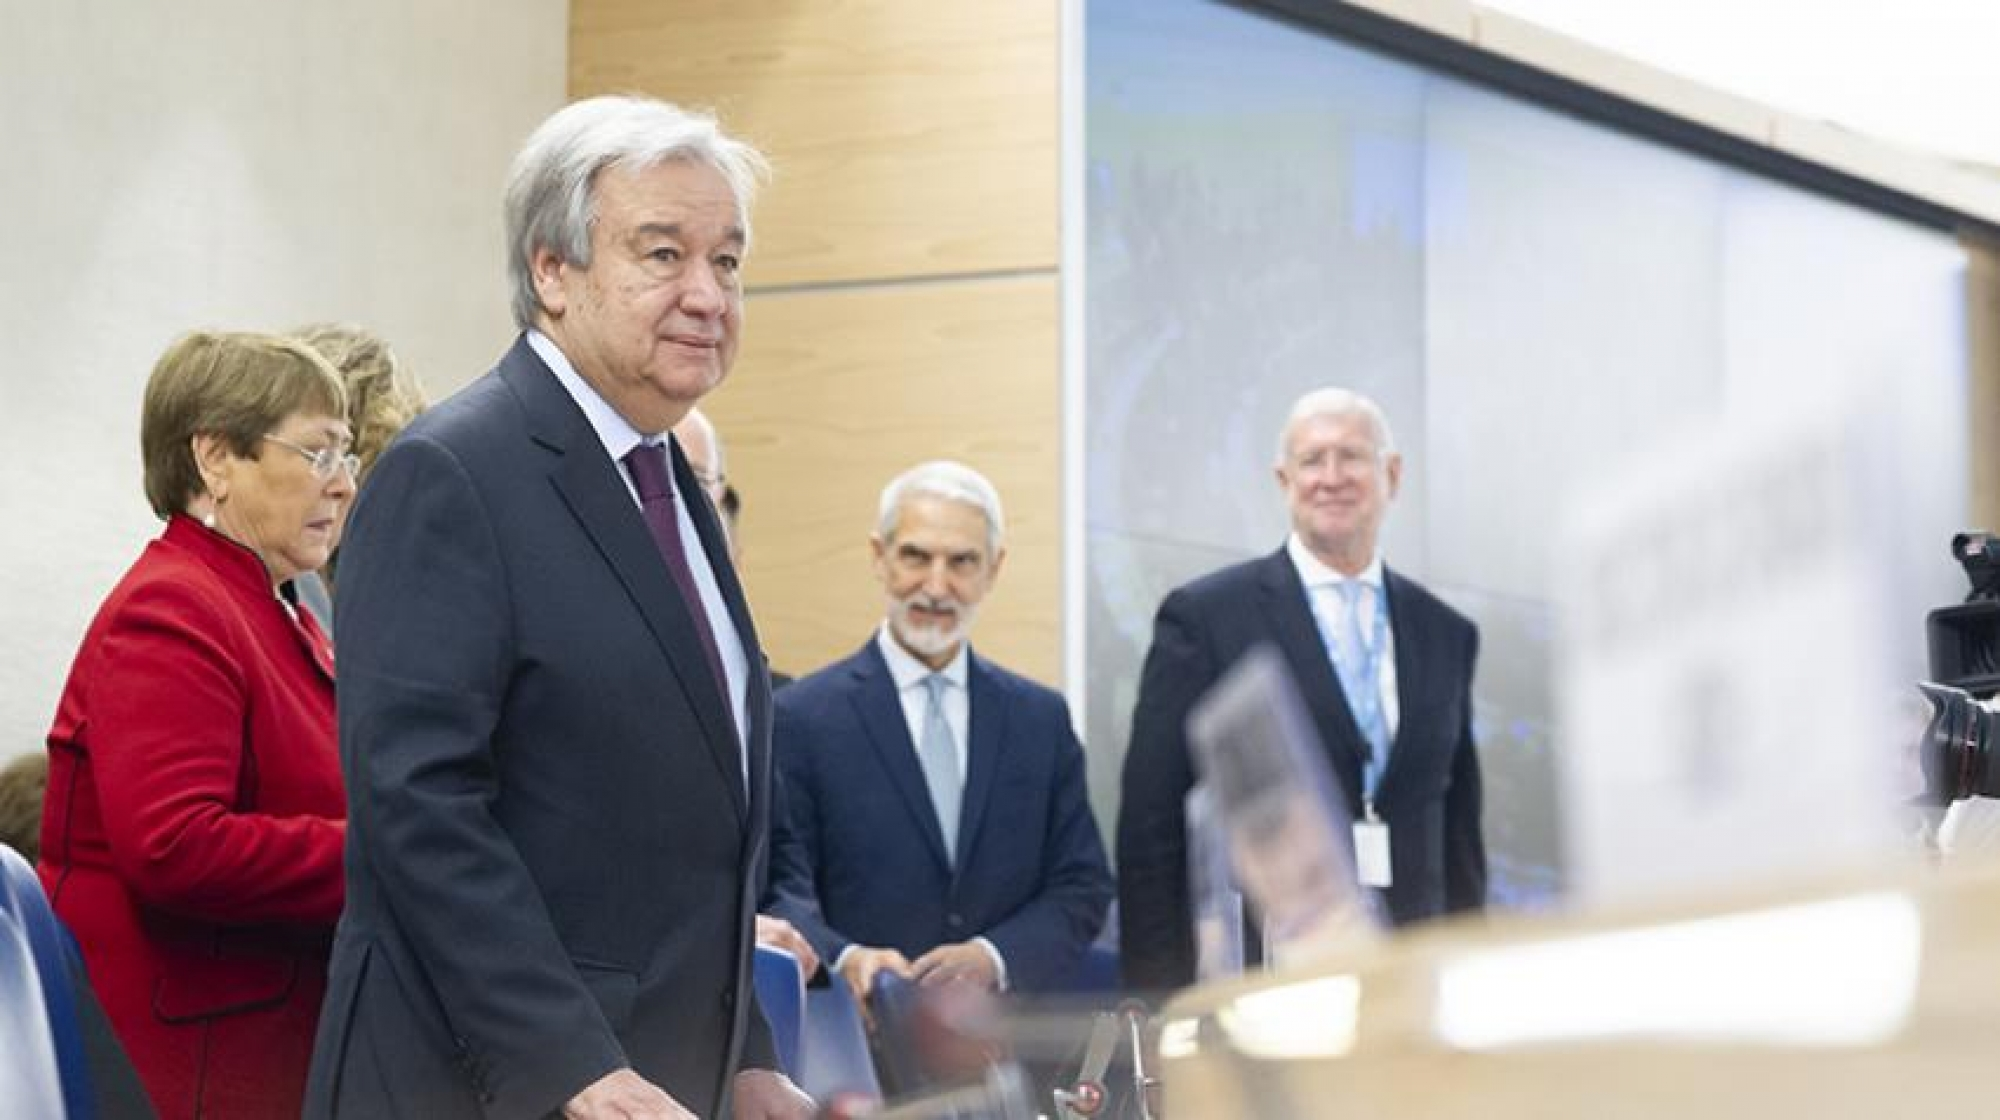 Secretary-General António Guterres (second from left) attending the opening of the forty-third regular session of the Human Rights Council, where he launched his Call for Action for Human Rights.